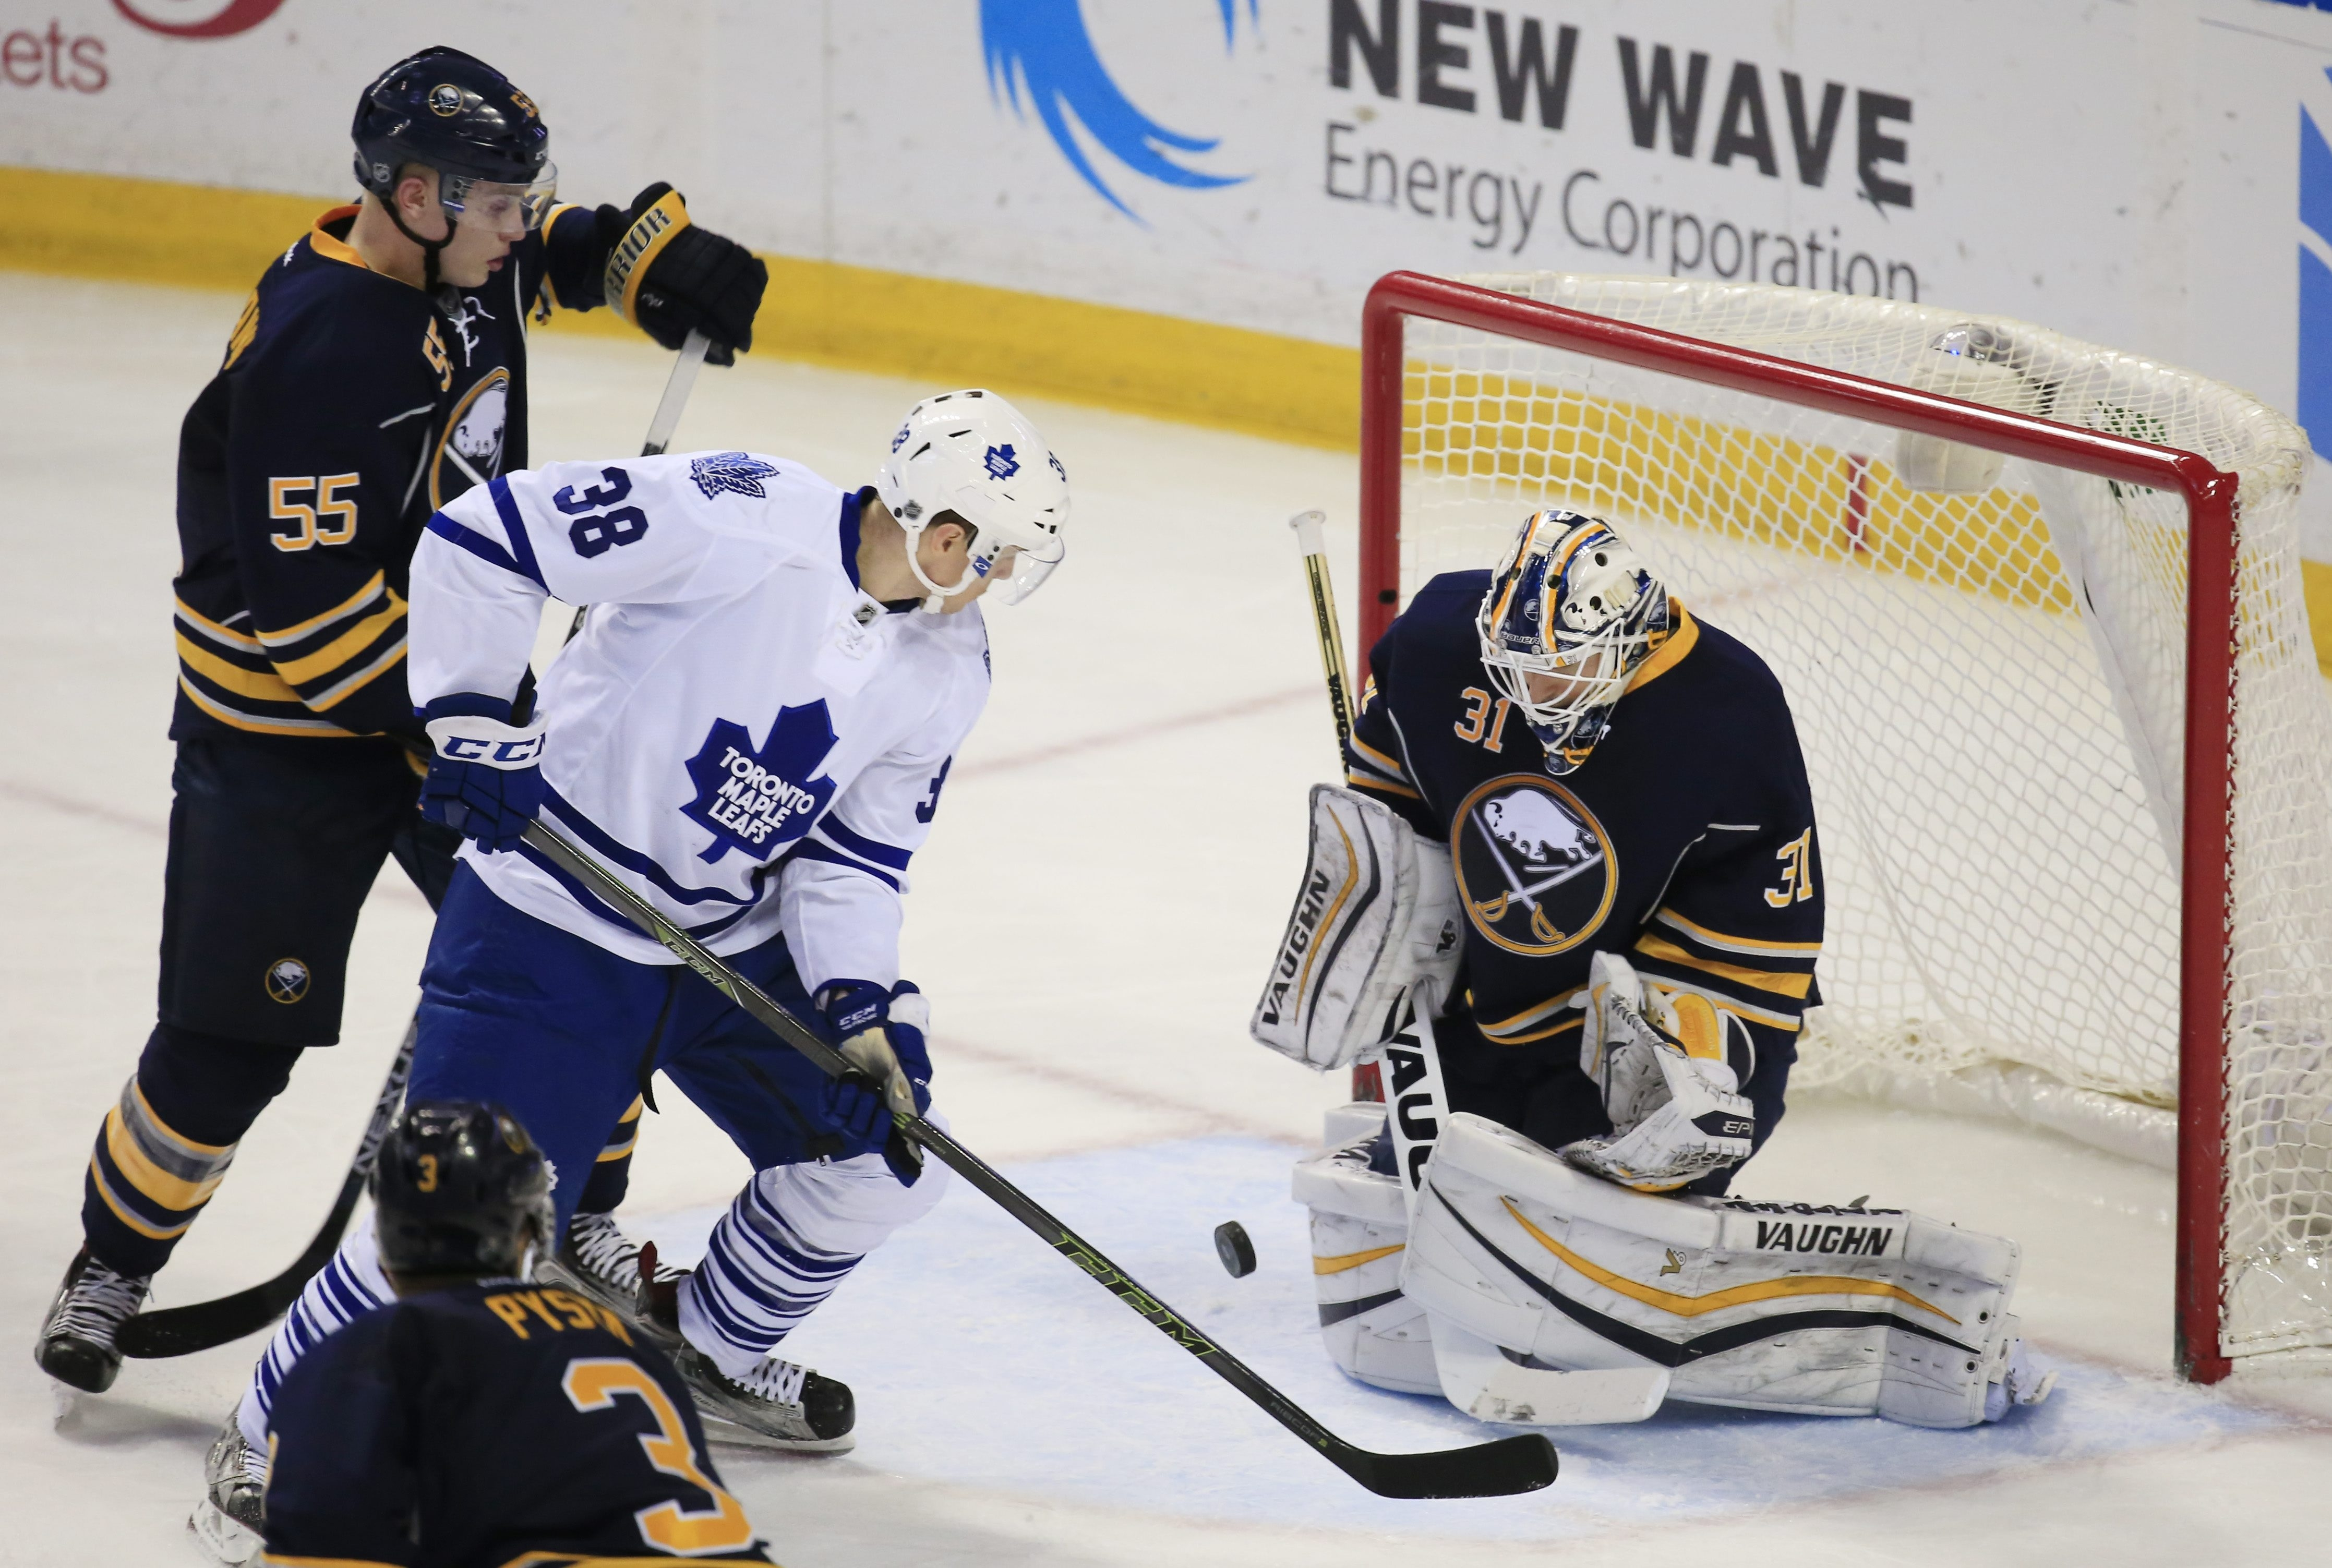 Sabres goaltender Chad Johnson stops Toronto's Colin Greening in the second period. Johnson made 25 saves on 26 shots.